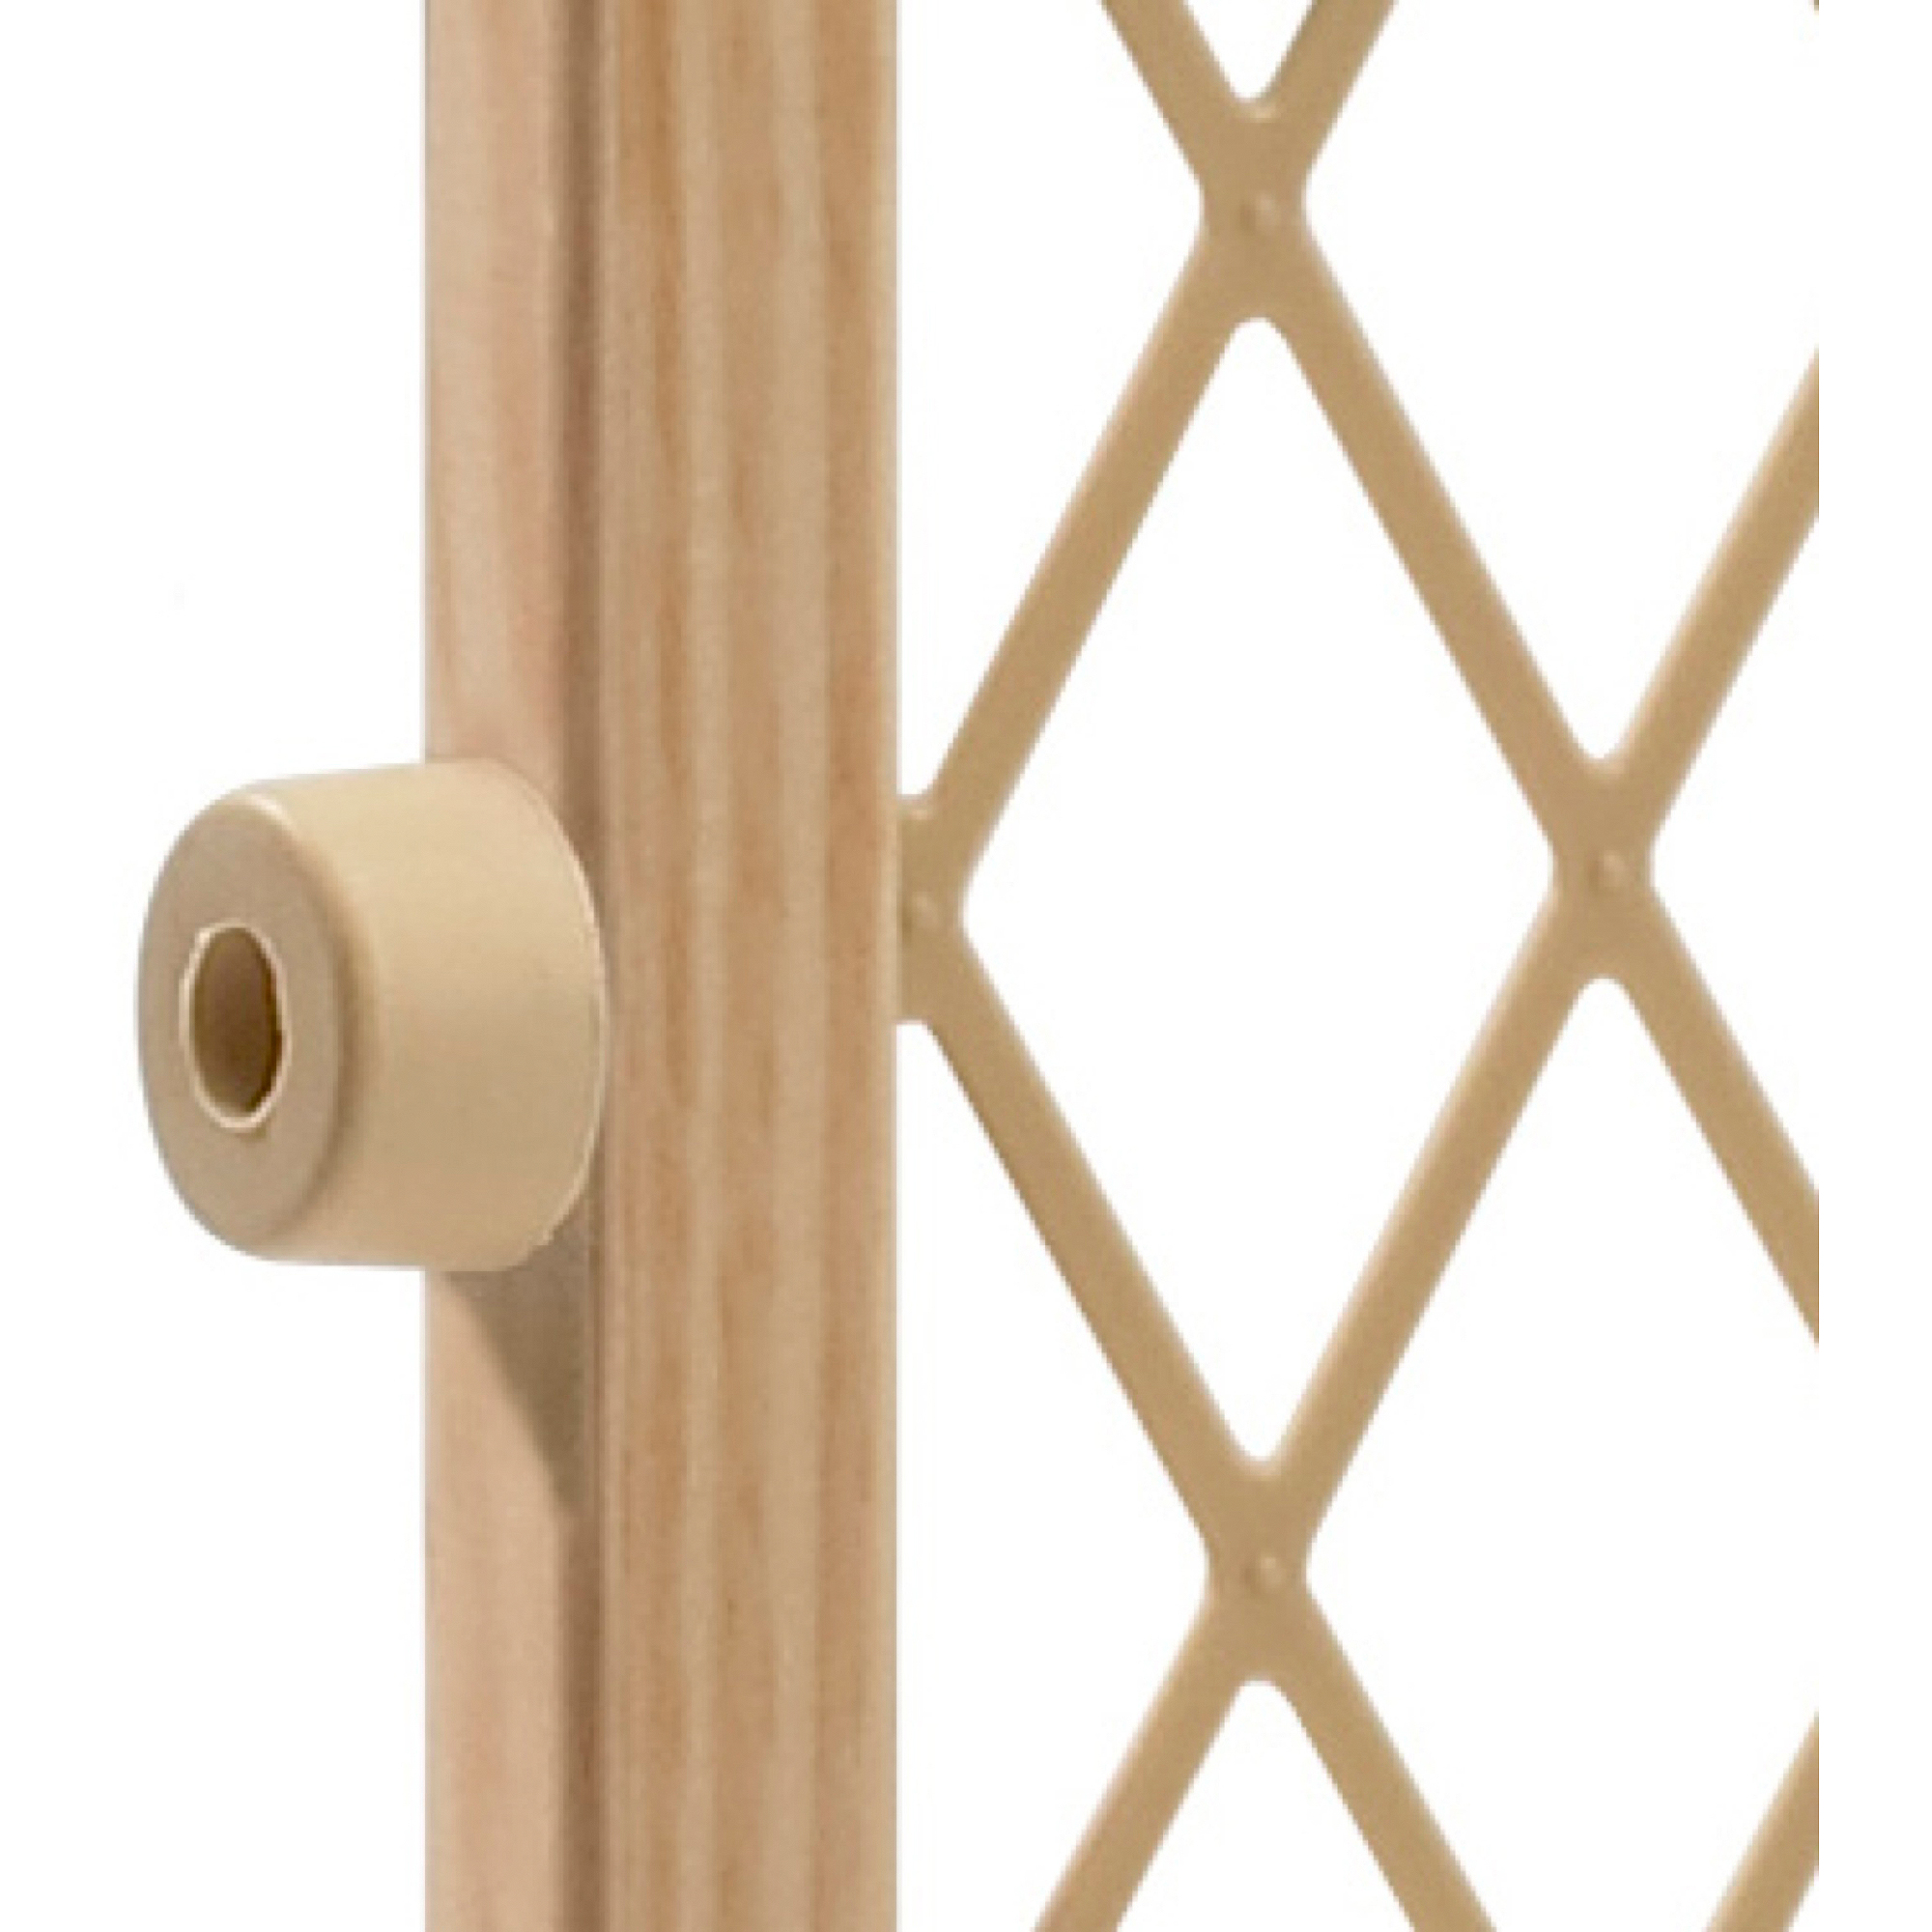 Evenflo Position And Lock Classic Gate Beige 8502117963824 Ebay